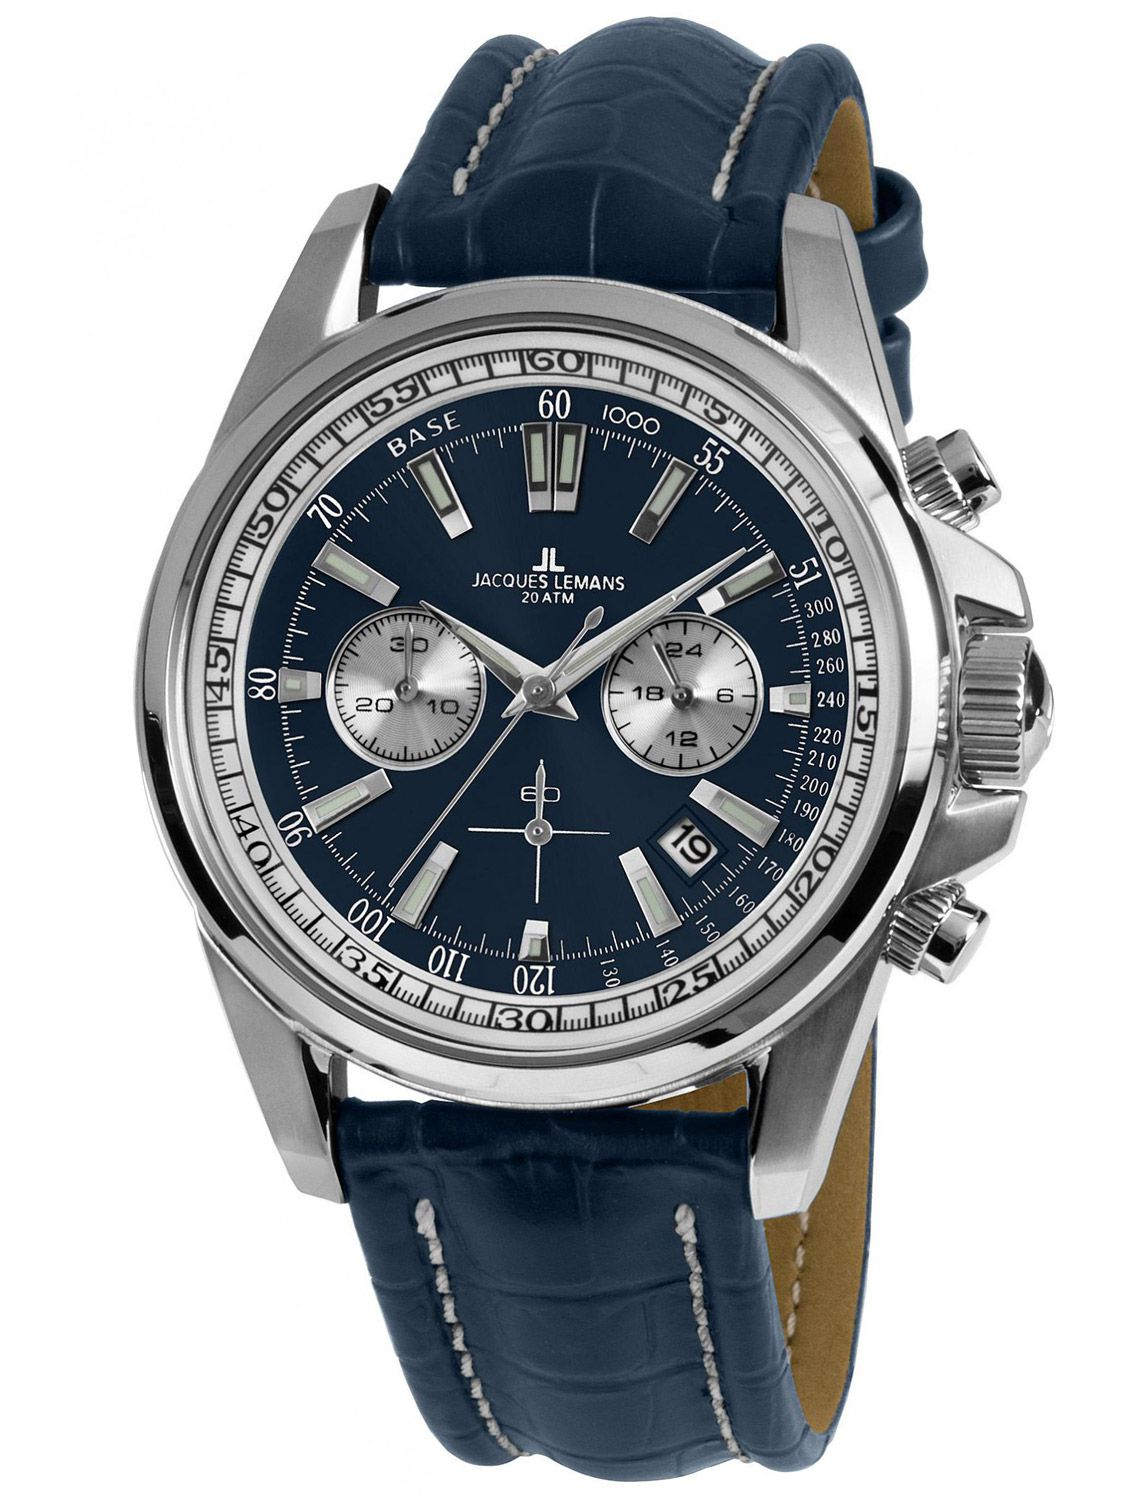 d88a7fc1beee7d Jacques Lemans 1-1117.1VN Mens Watch Chronograph Liverpool Image 1 ...